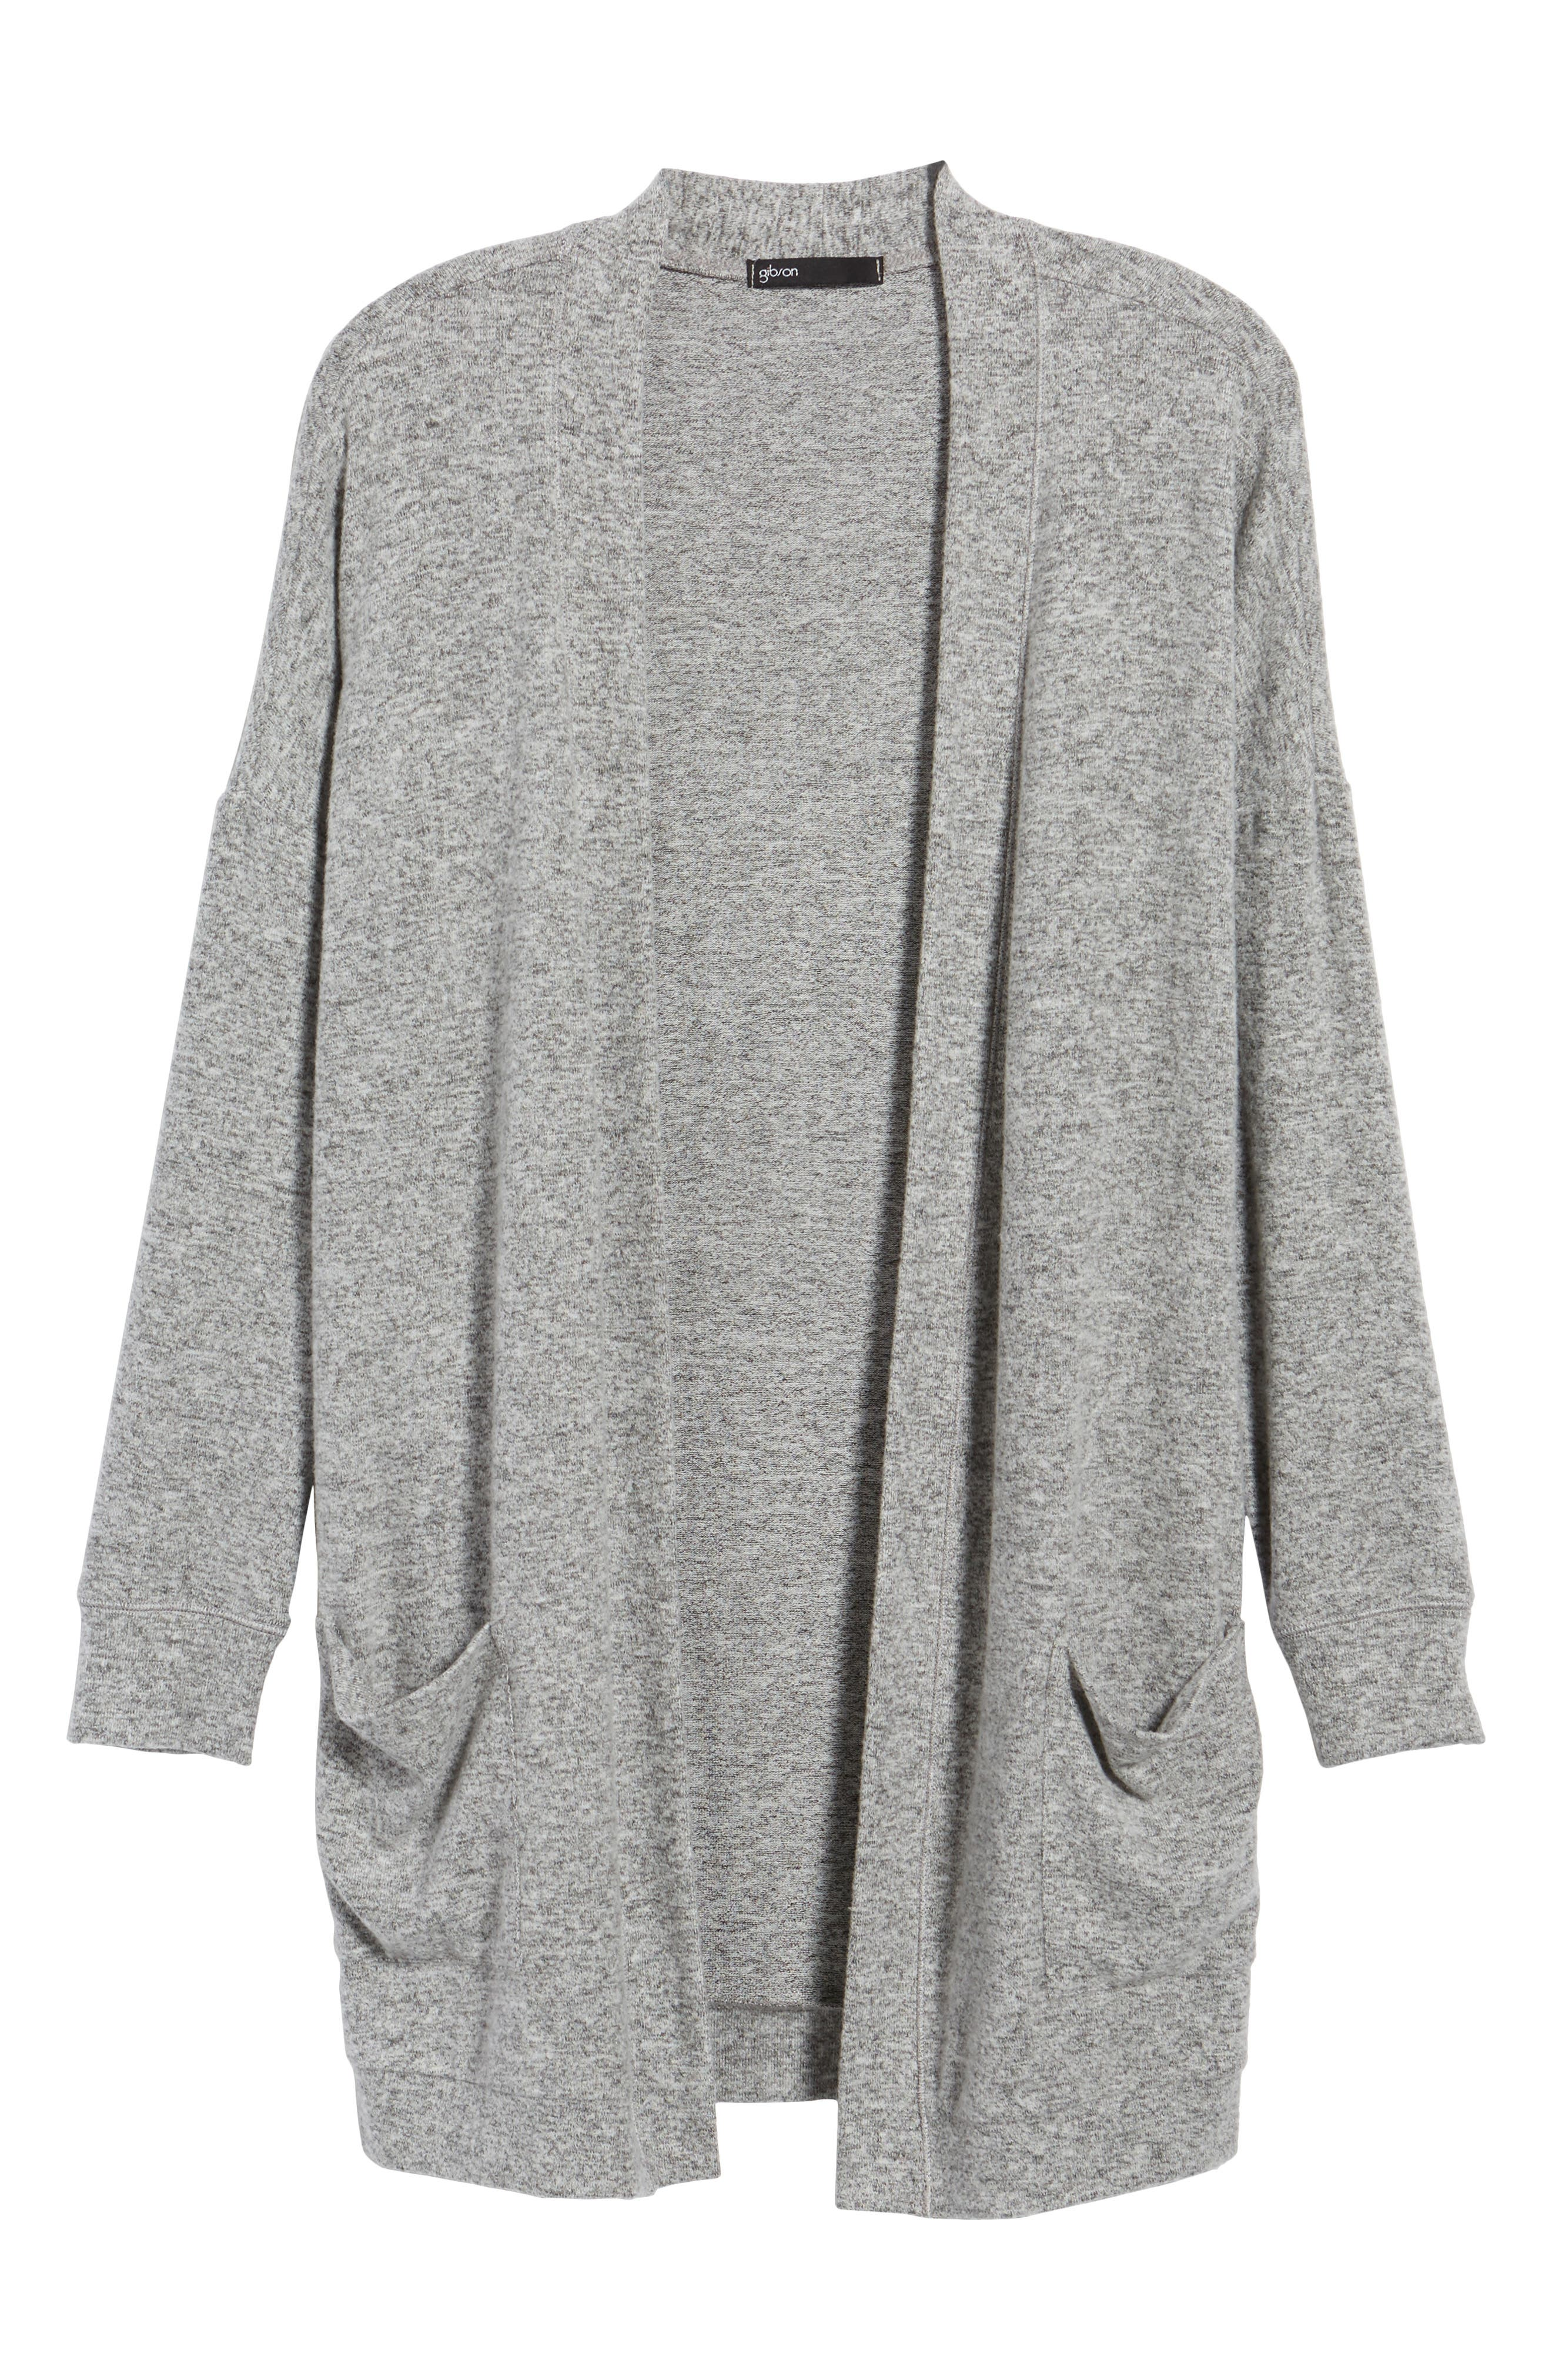 Rib Knit Cardigan,                             Alternate thumbnail 6, color,                             LIGHT HEATHER GREY